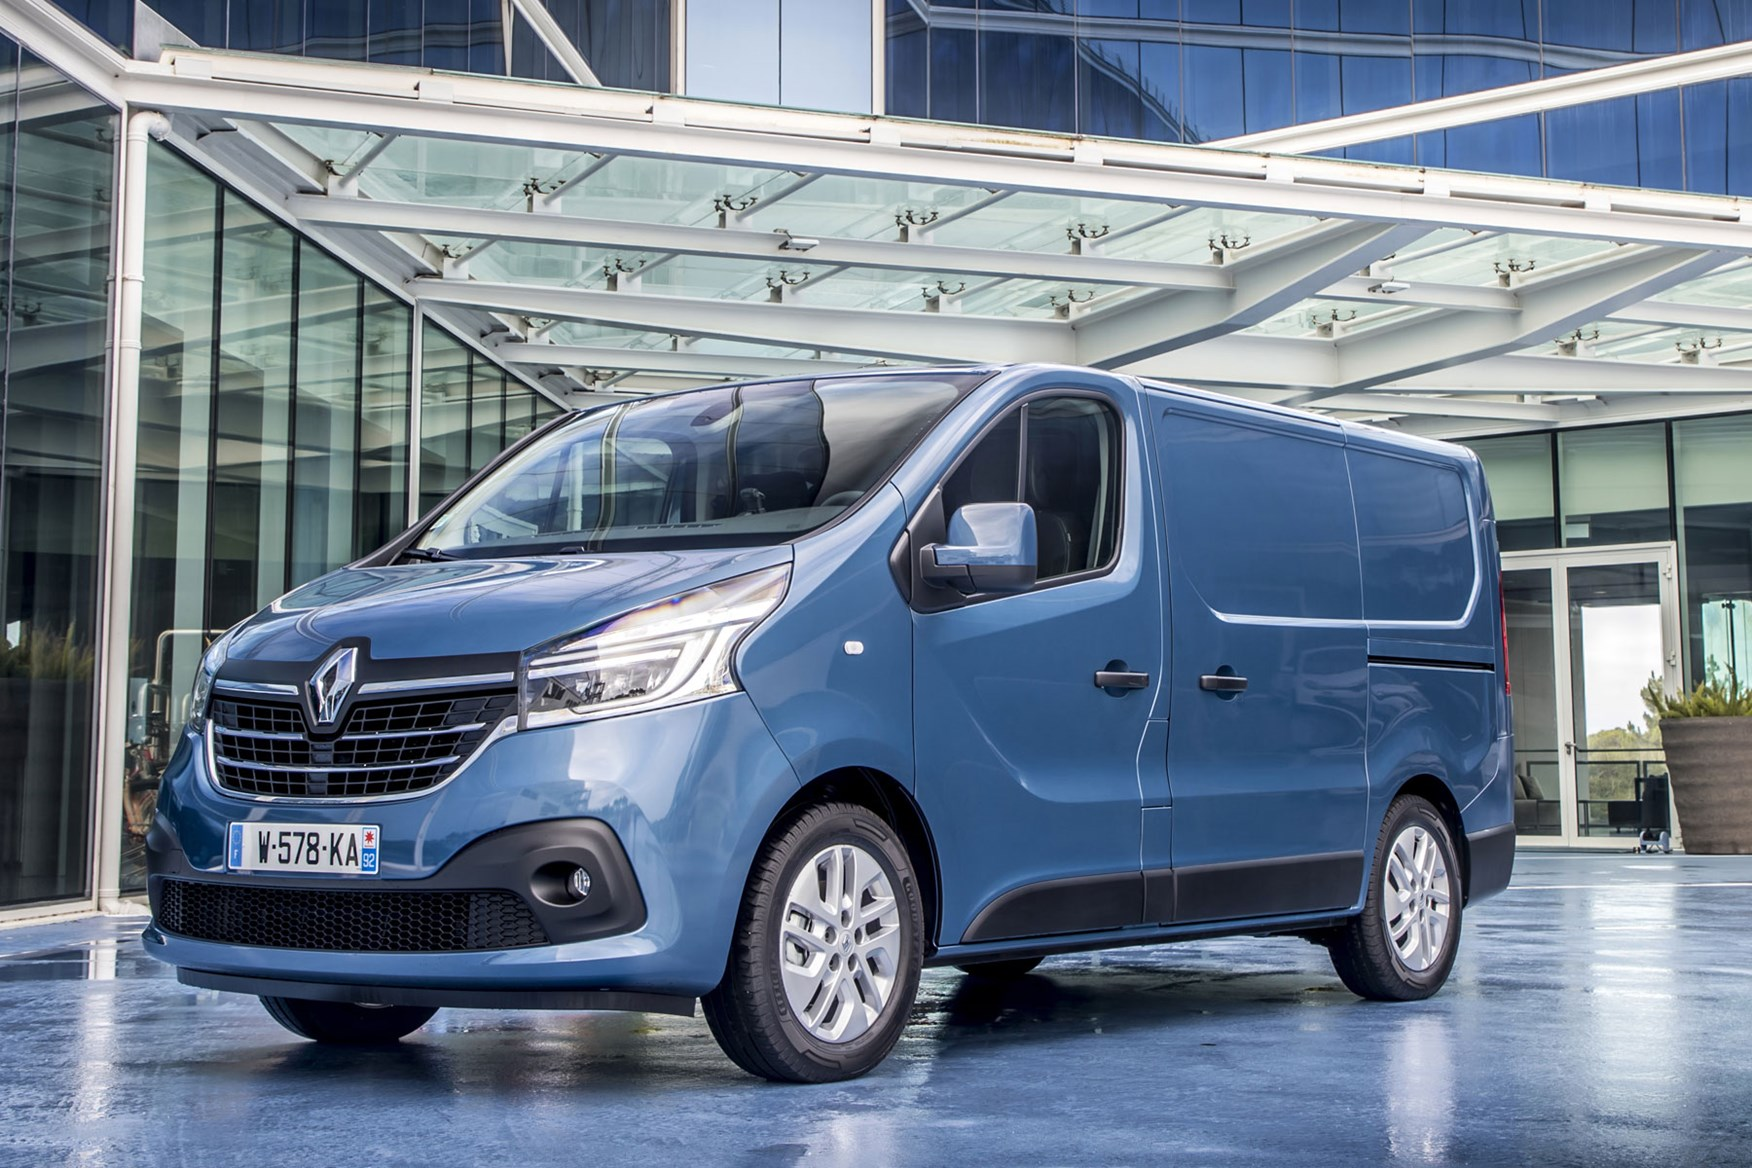 Renault Trafic review - 2019 facelift, front view, blue